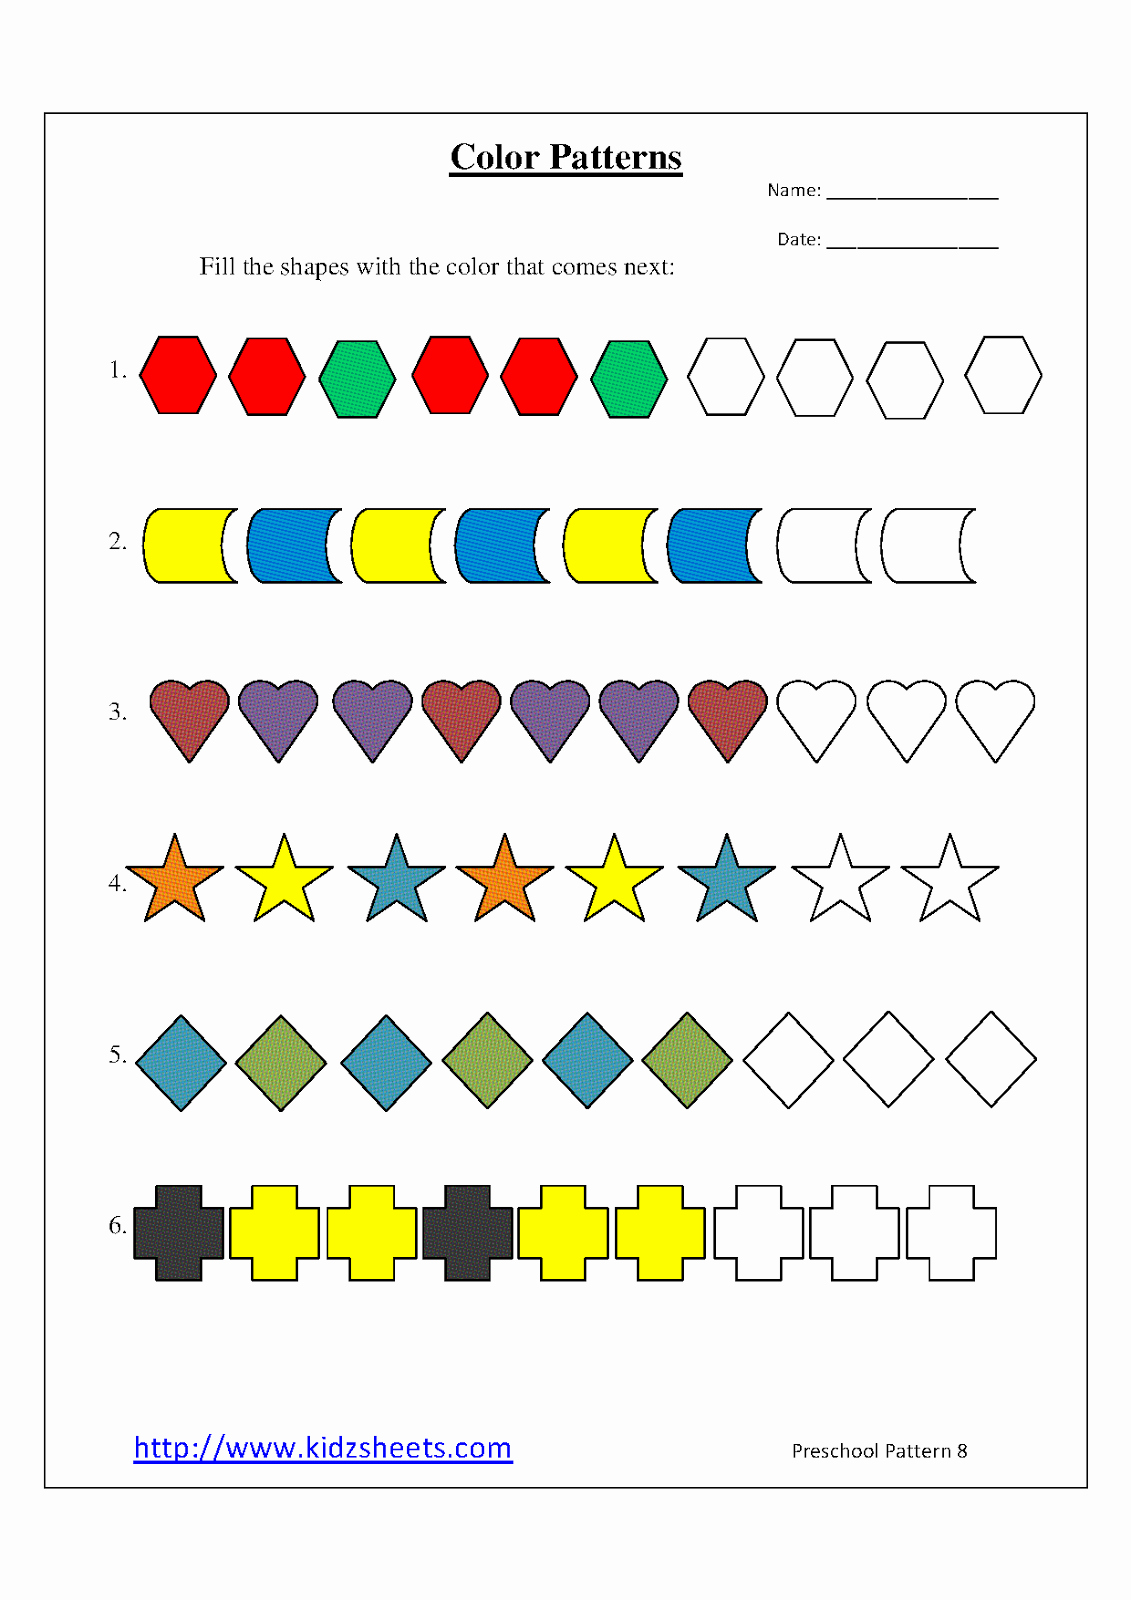 Patterns Worksheet for Kindergarten Elegant Kidz Worksheets Preschool Color Patterns Worksheet8